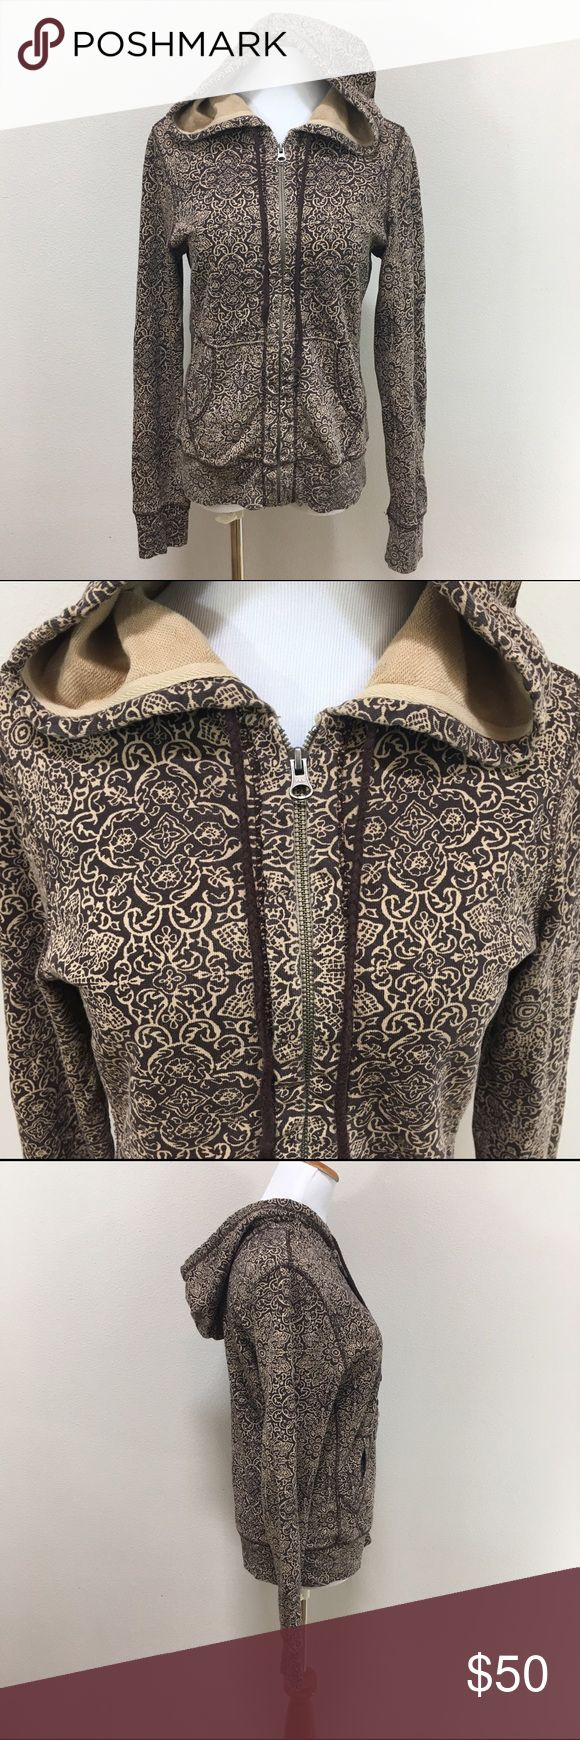 John Robshaw Lucky Brand Floral Hoodie Medium John Robshaw Lucky Brand Brown Floral Hoodie Sweatshirt Cotton Women's Medium. Excellent condition! Dark brown pattern. Clean and comes from smoke free home. Questions welcomed! Lucky Brand Tops Sweatshirts & Hoodies